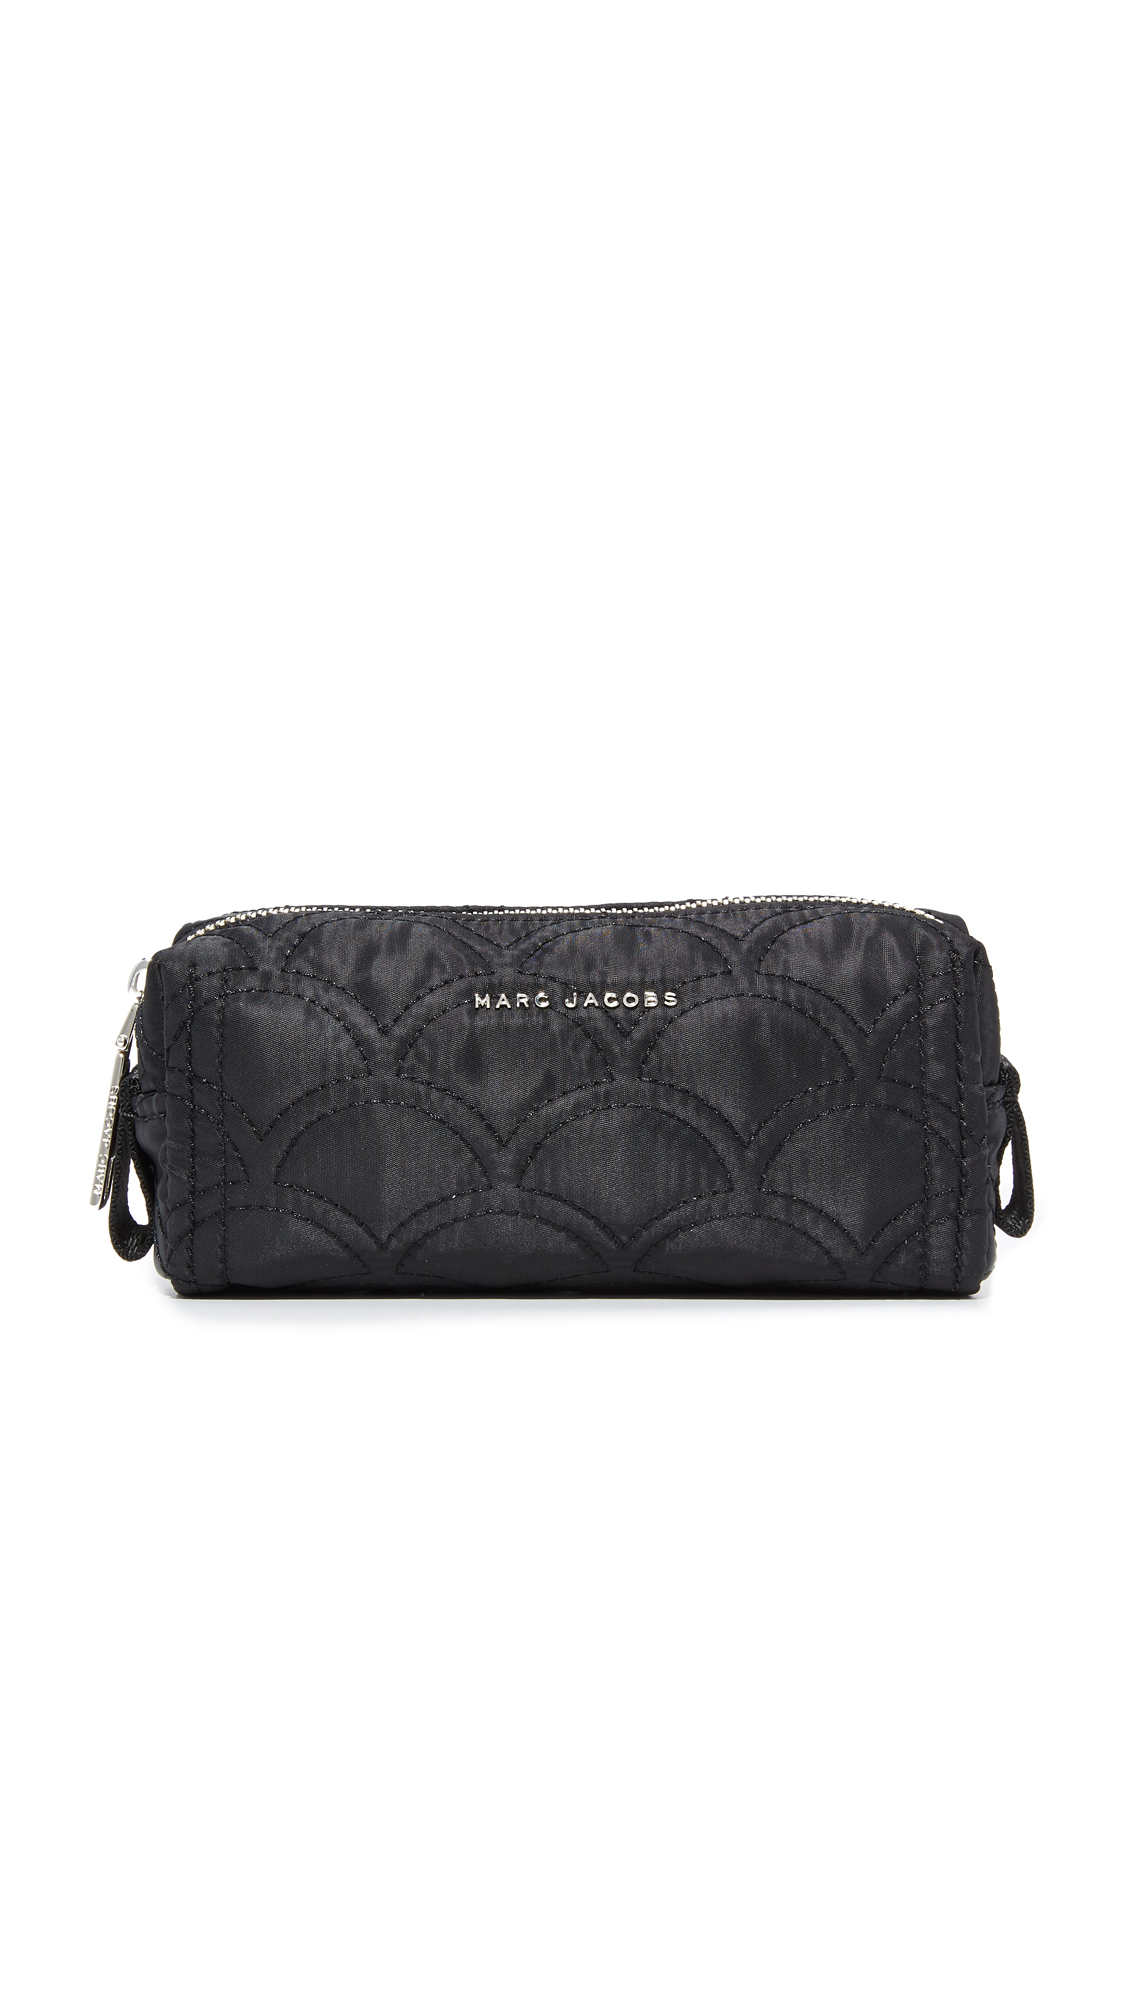 marc jacobs female marc jacobs easy quilted skinny cosmetic case black